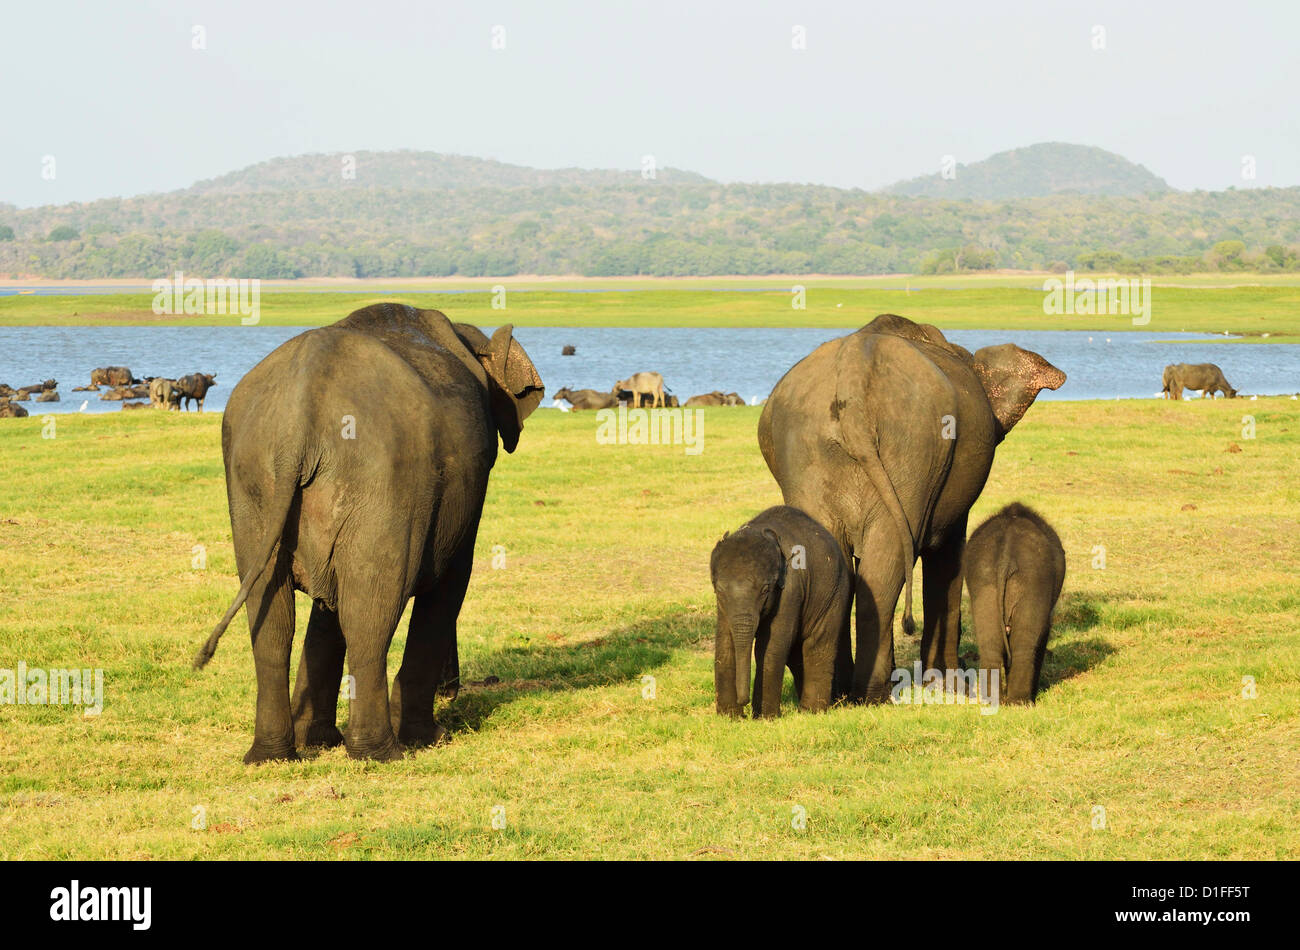 Sri Lanka Elephant High Resolution Stock Photography And Images Alamy While it is searching for the young, juicy leaves of a tree. https www alamy com stock photo sri lankan elephant elephas maximus maximus minneriya national park 52586964 html